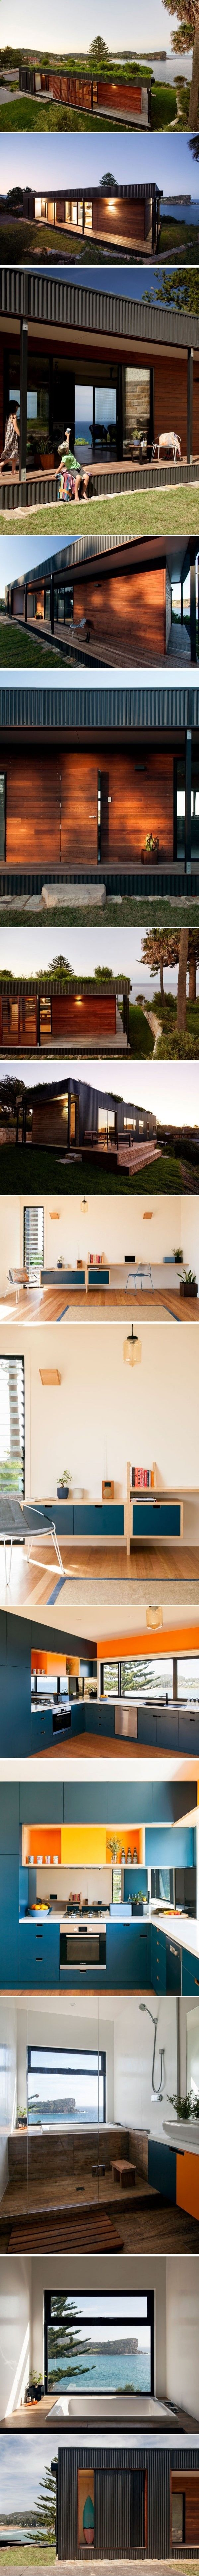 best homes images on pinterest decks container homes and